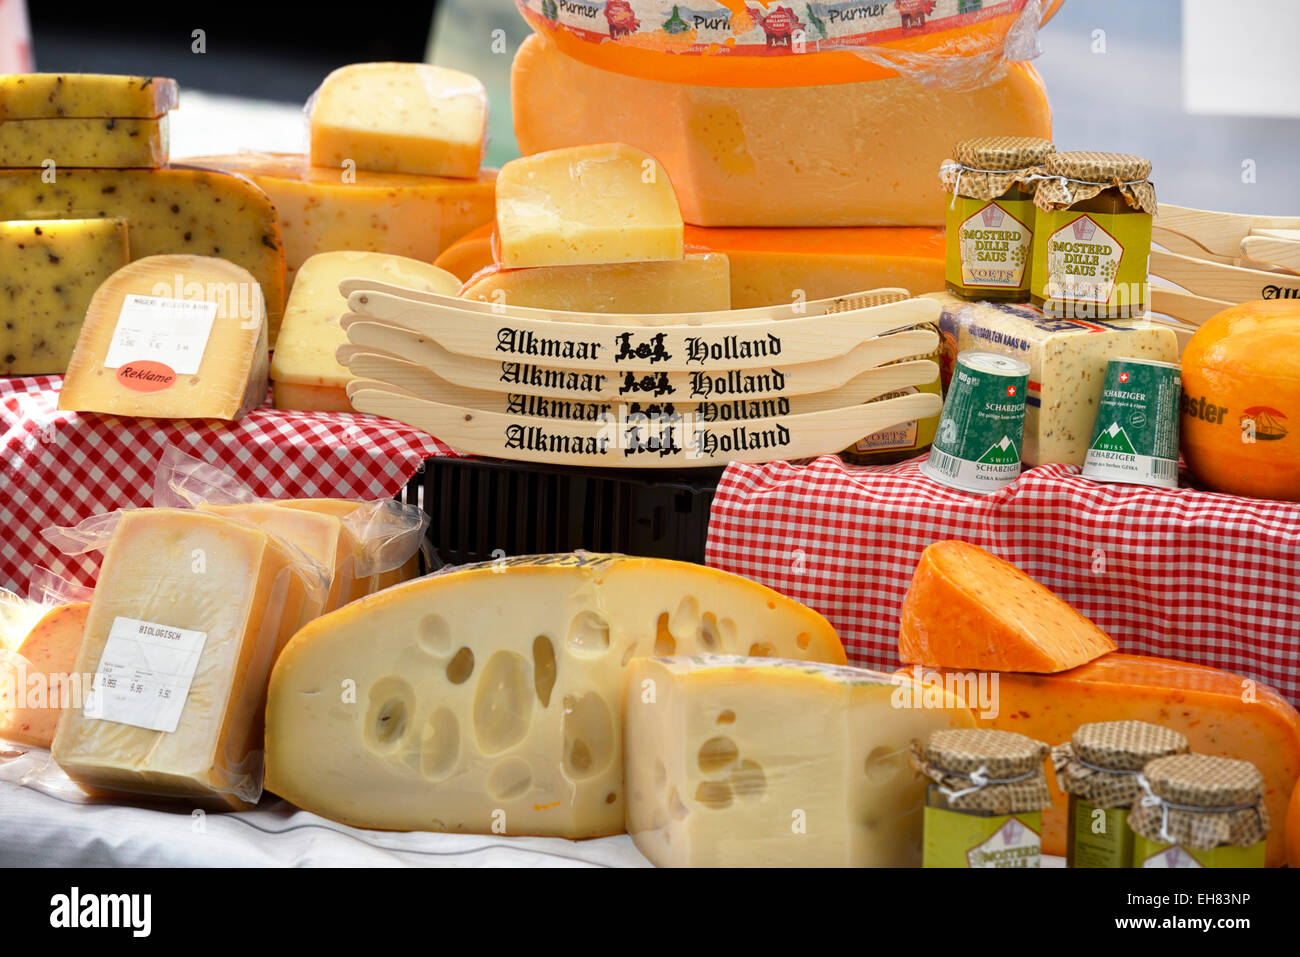 Dutch cheese on a market stall, Marktstraat, Alkmaar, North Holland, Netherlands, Europe - Stock Image